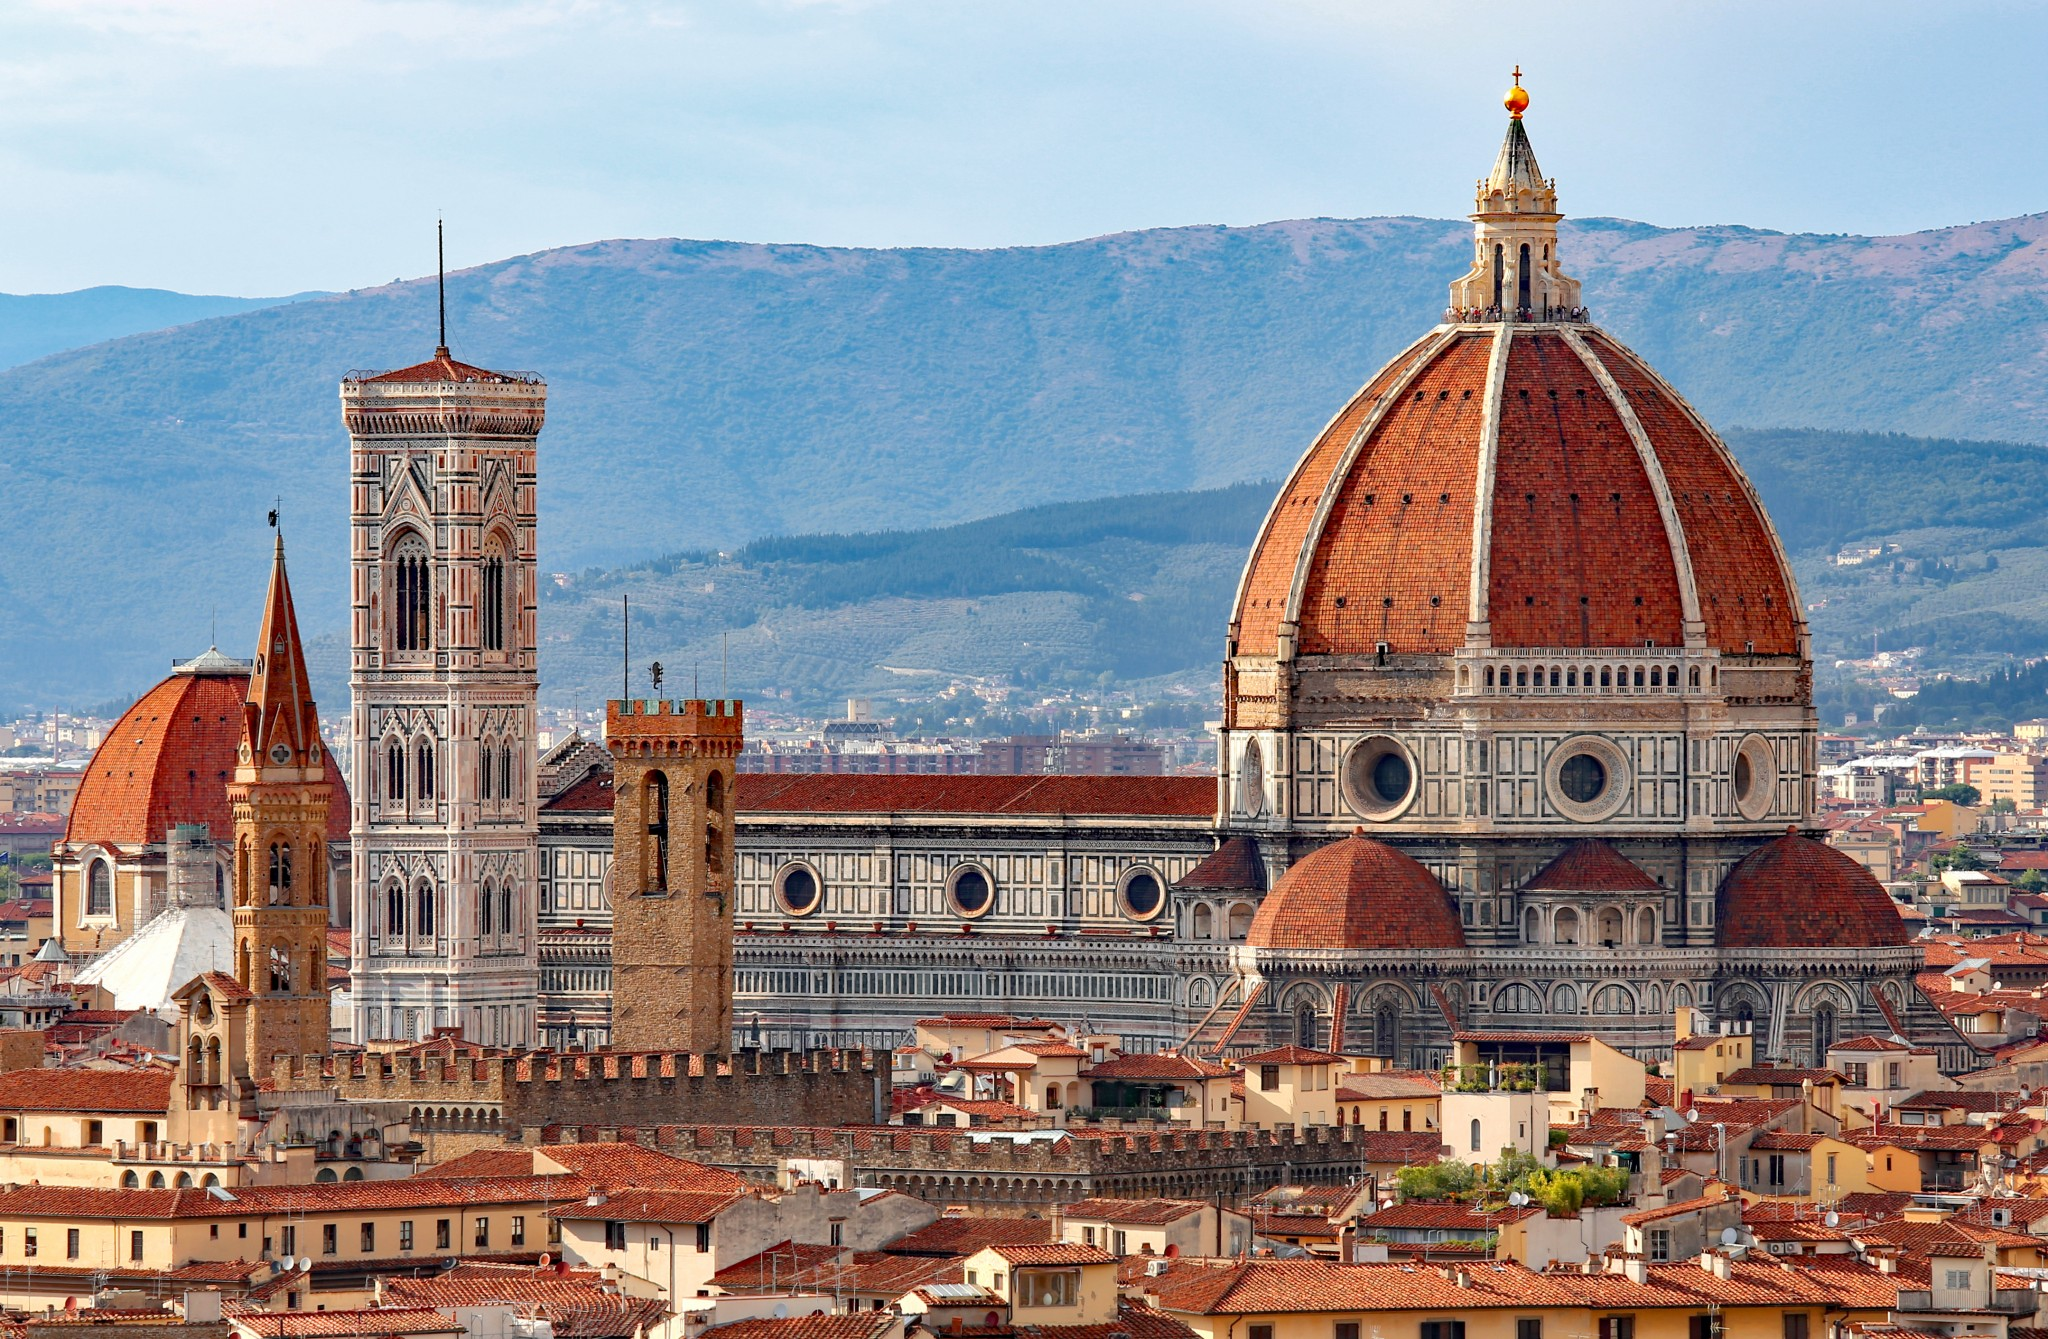 Climb Il Duomo Florence, Italy: Reserve your tickets in advance